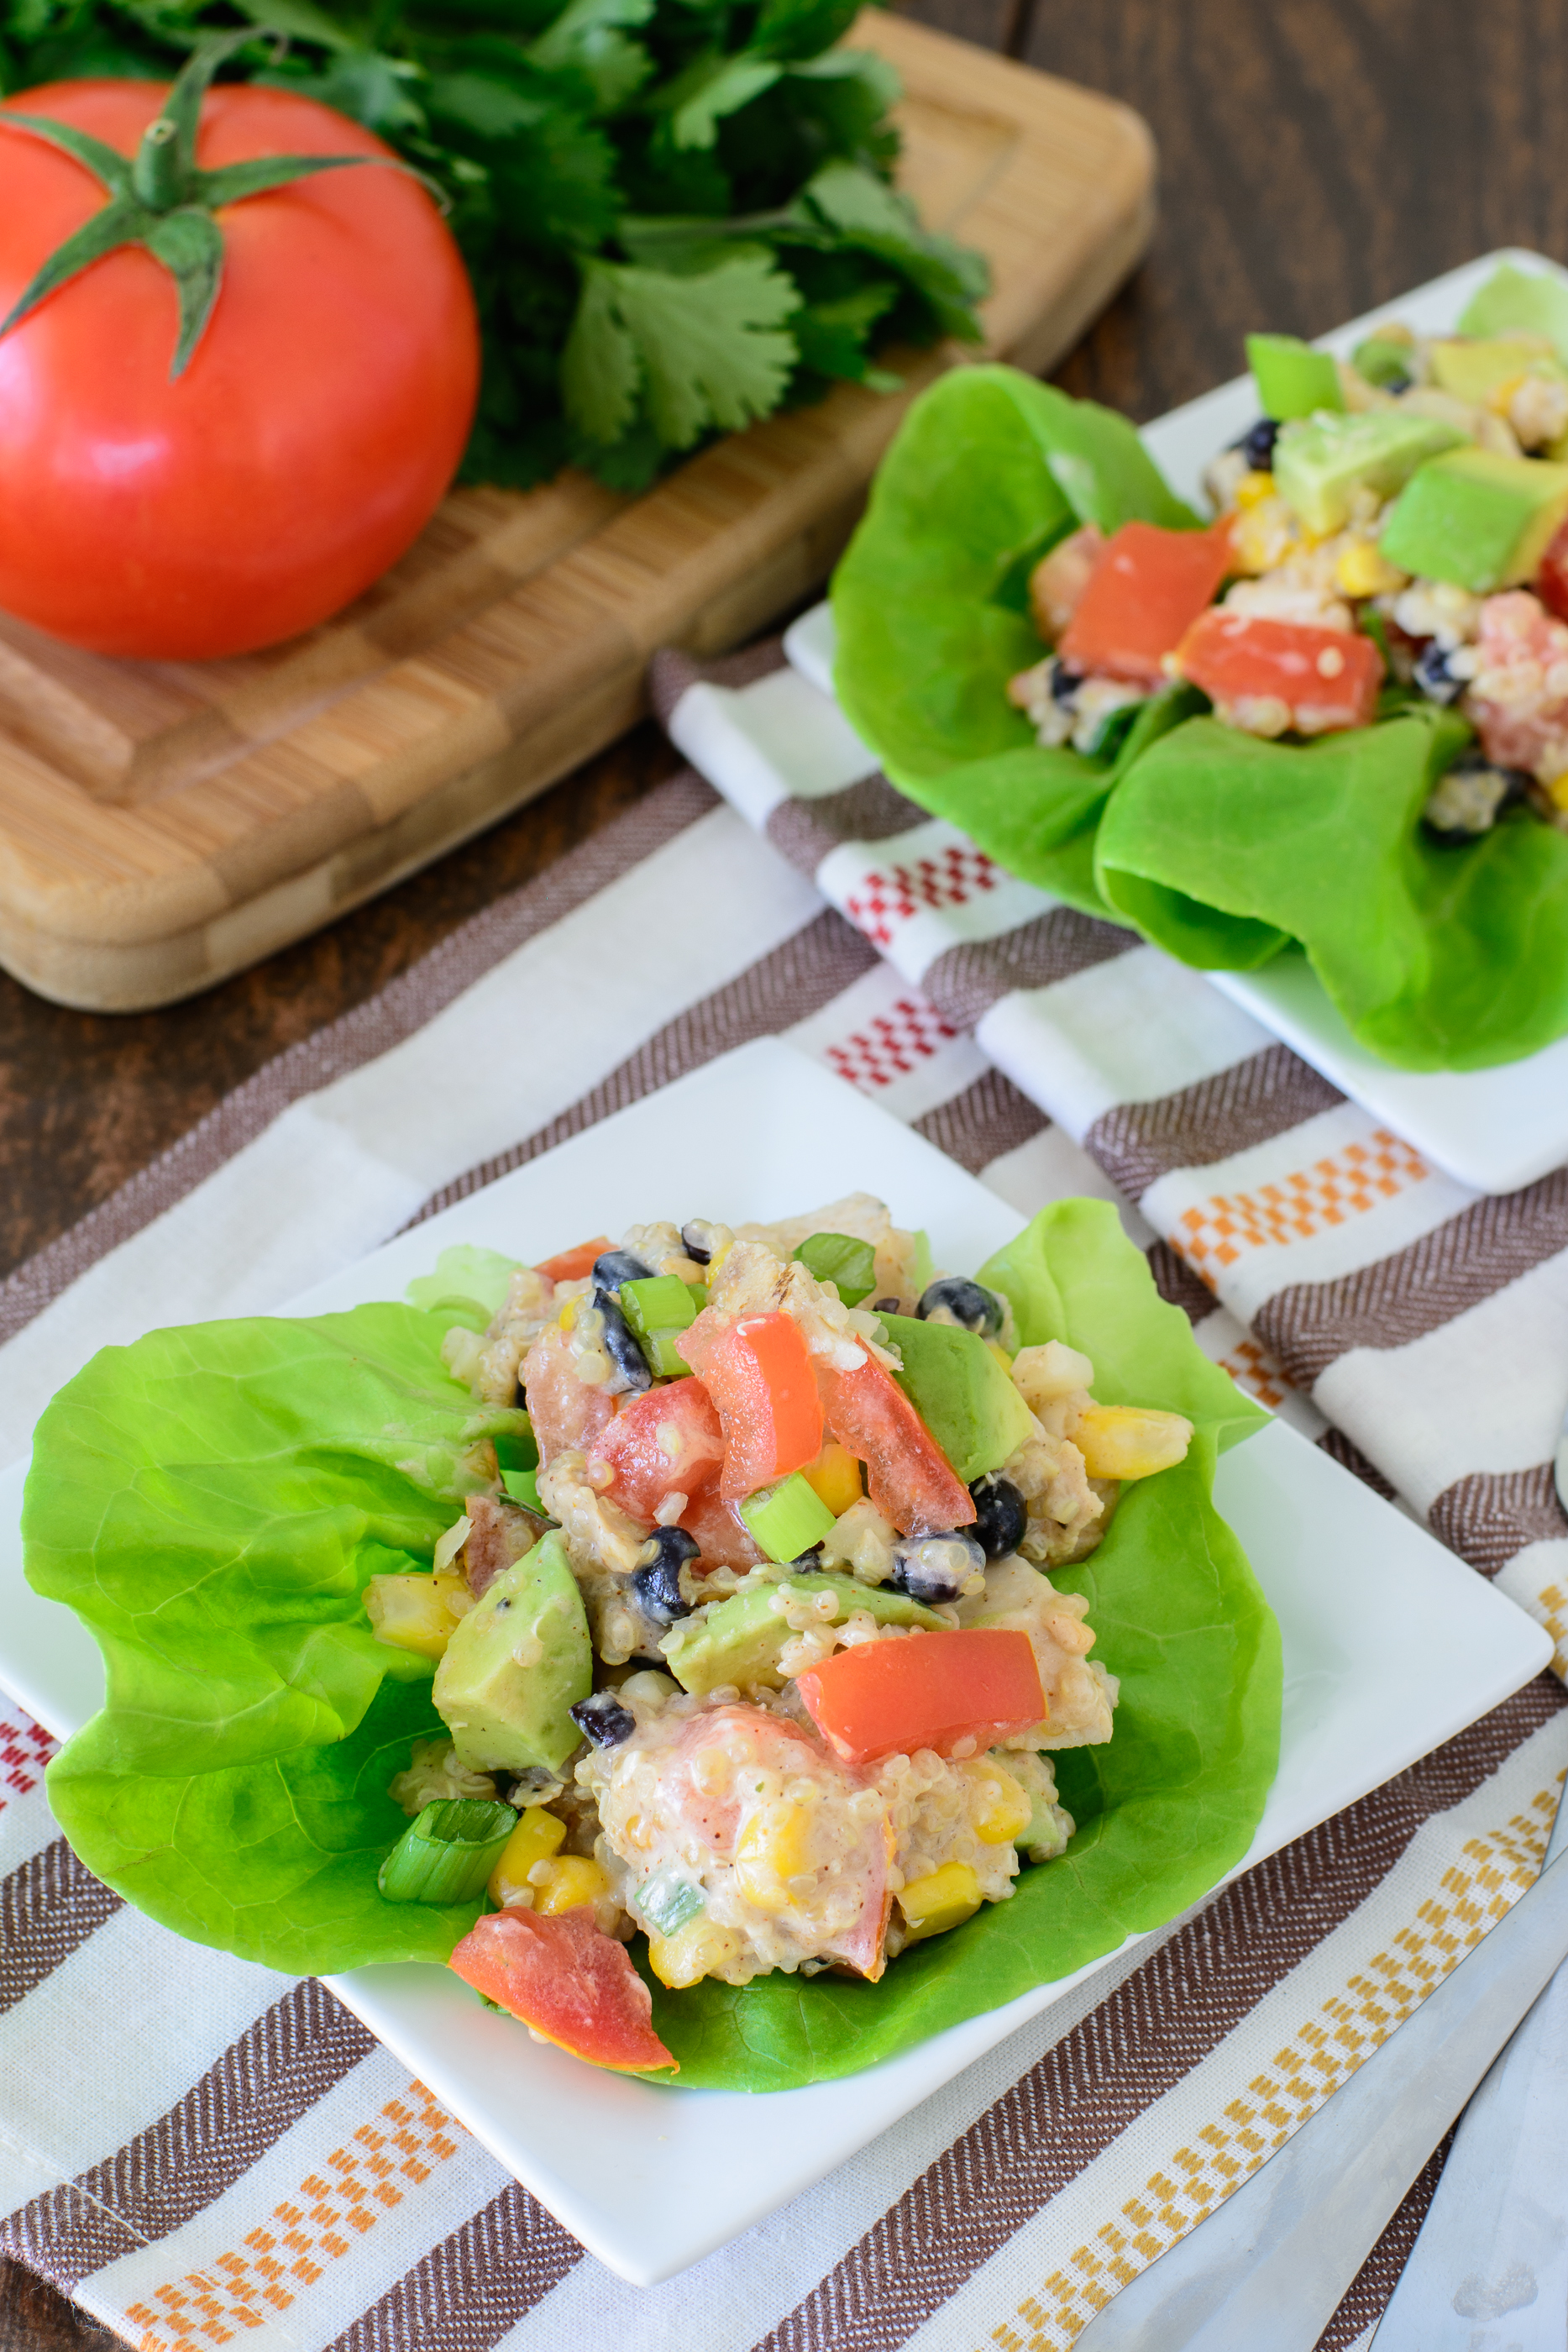 This versatile quinoa recipe will be the hit of all your summer parties and BBQs. Delicious, filling and healthy! You can't lose with this great summer recipe!